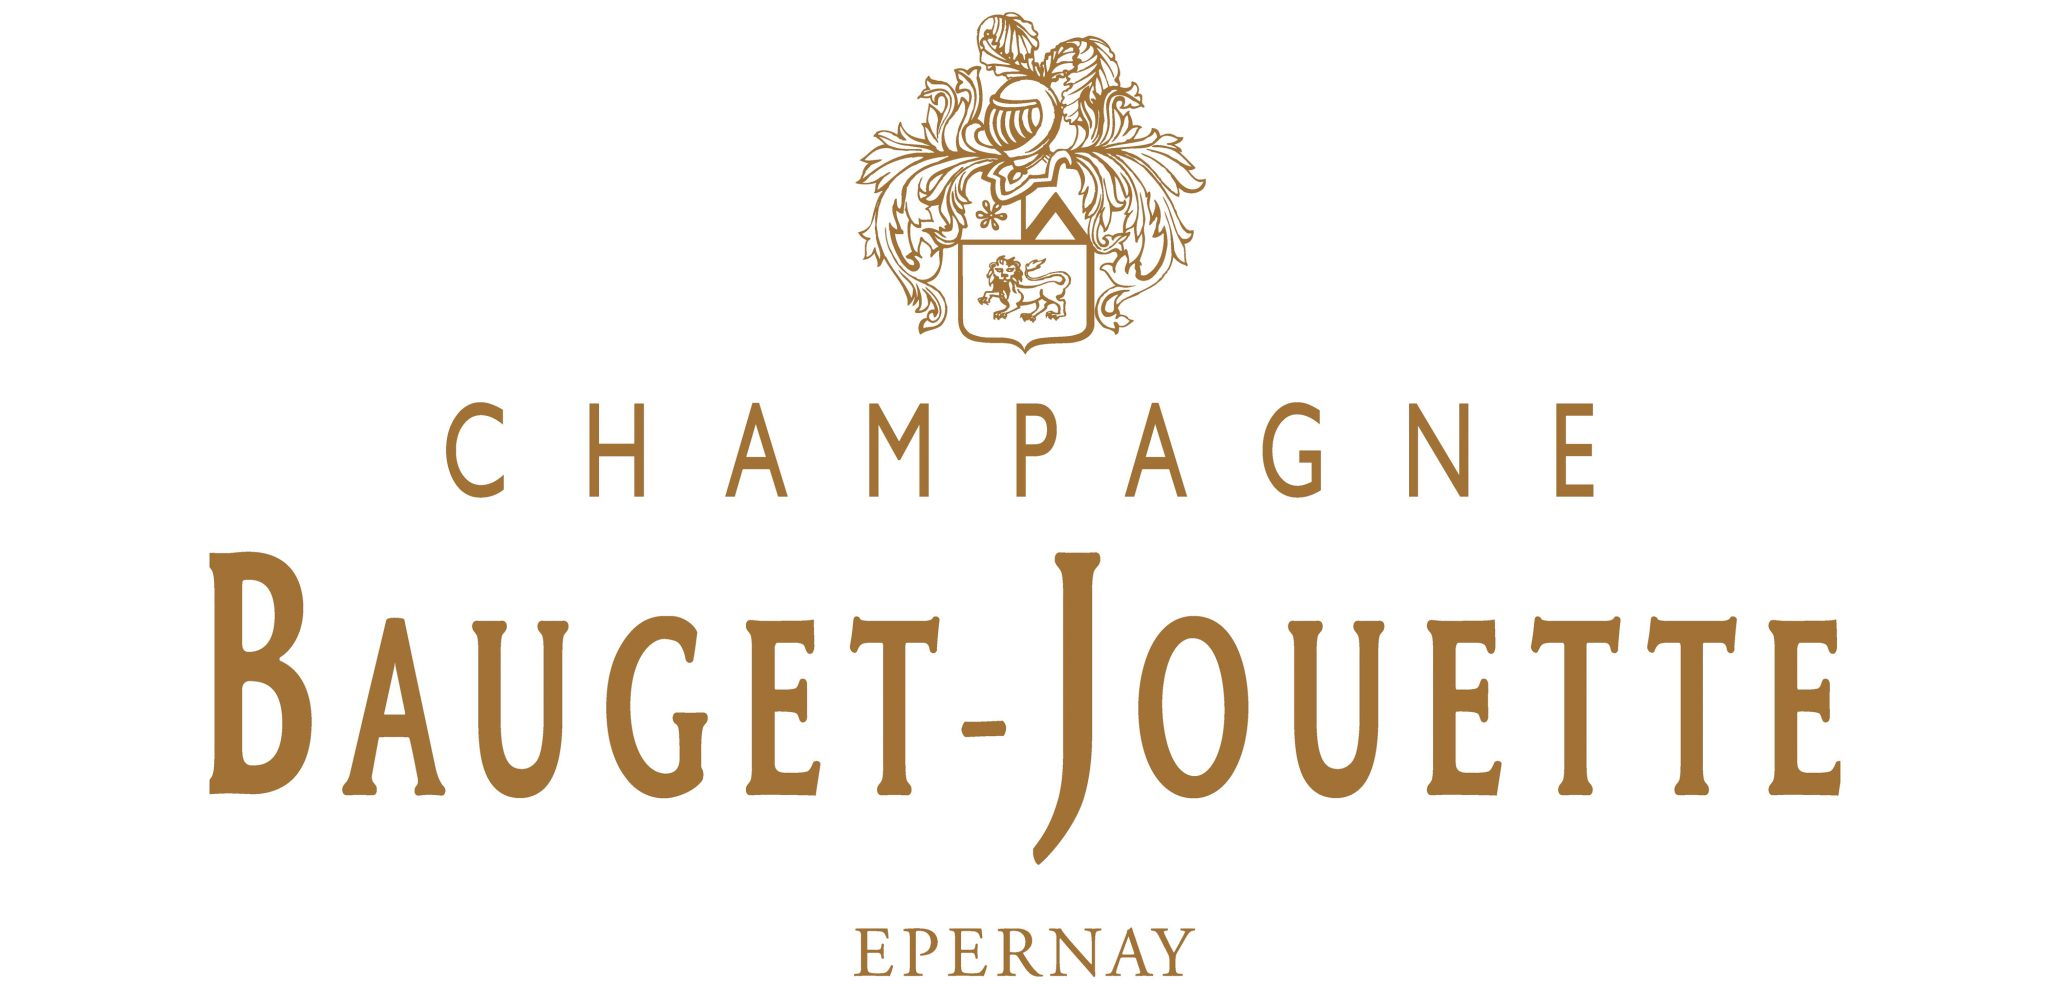 Champagne Bauget-Jouette